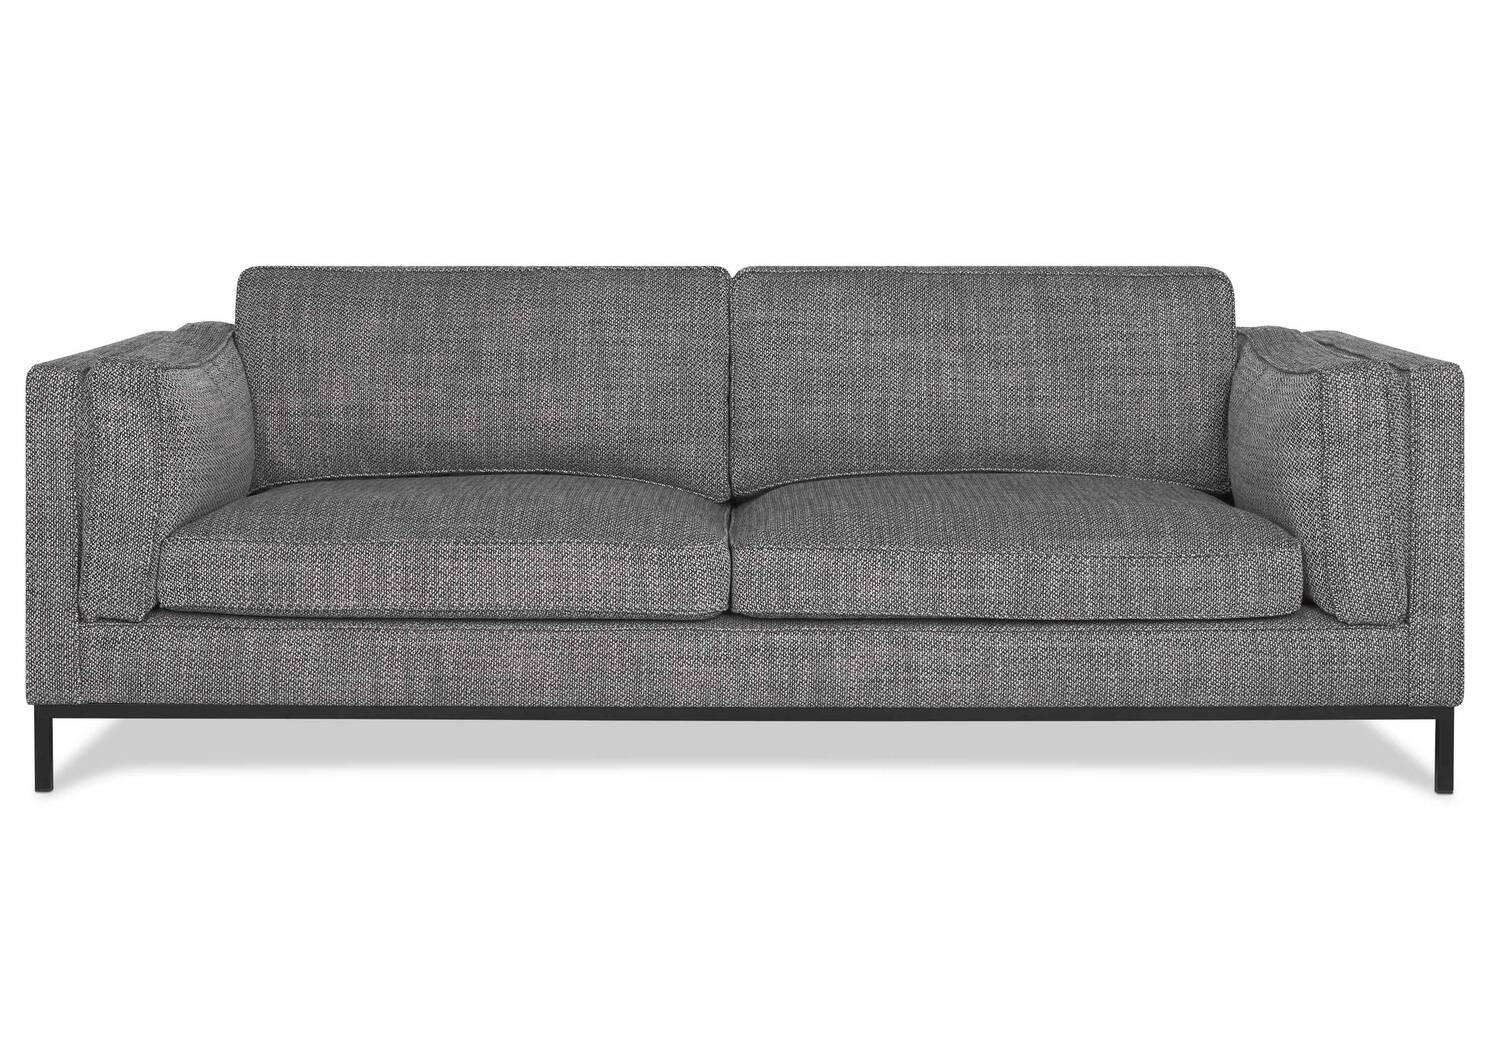 Halifax Sofa -Dean Pepper